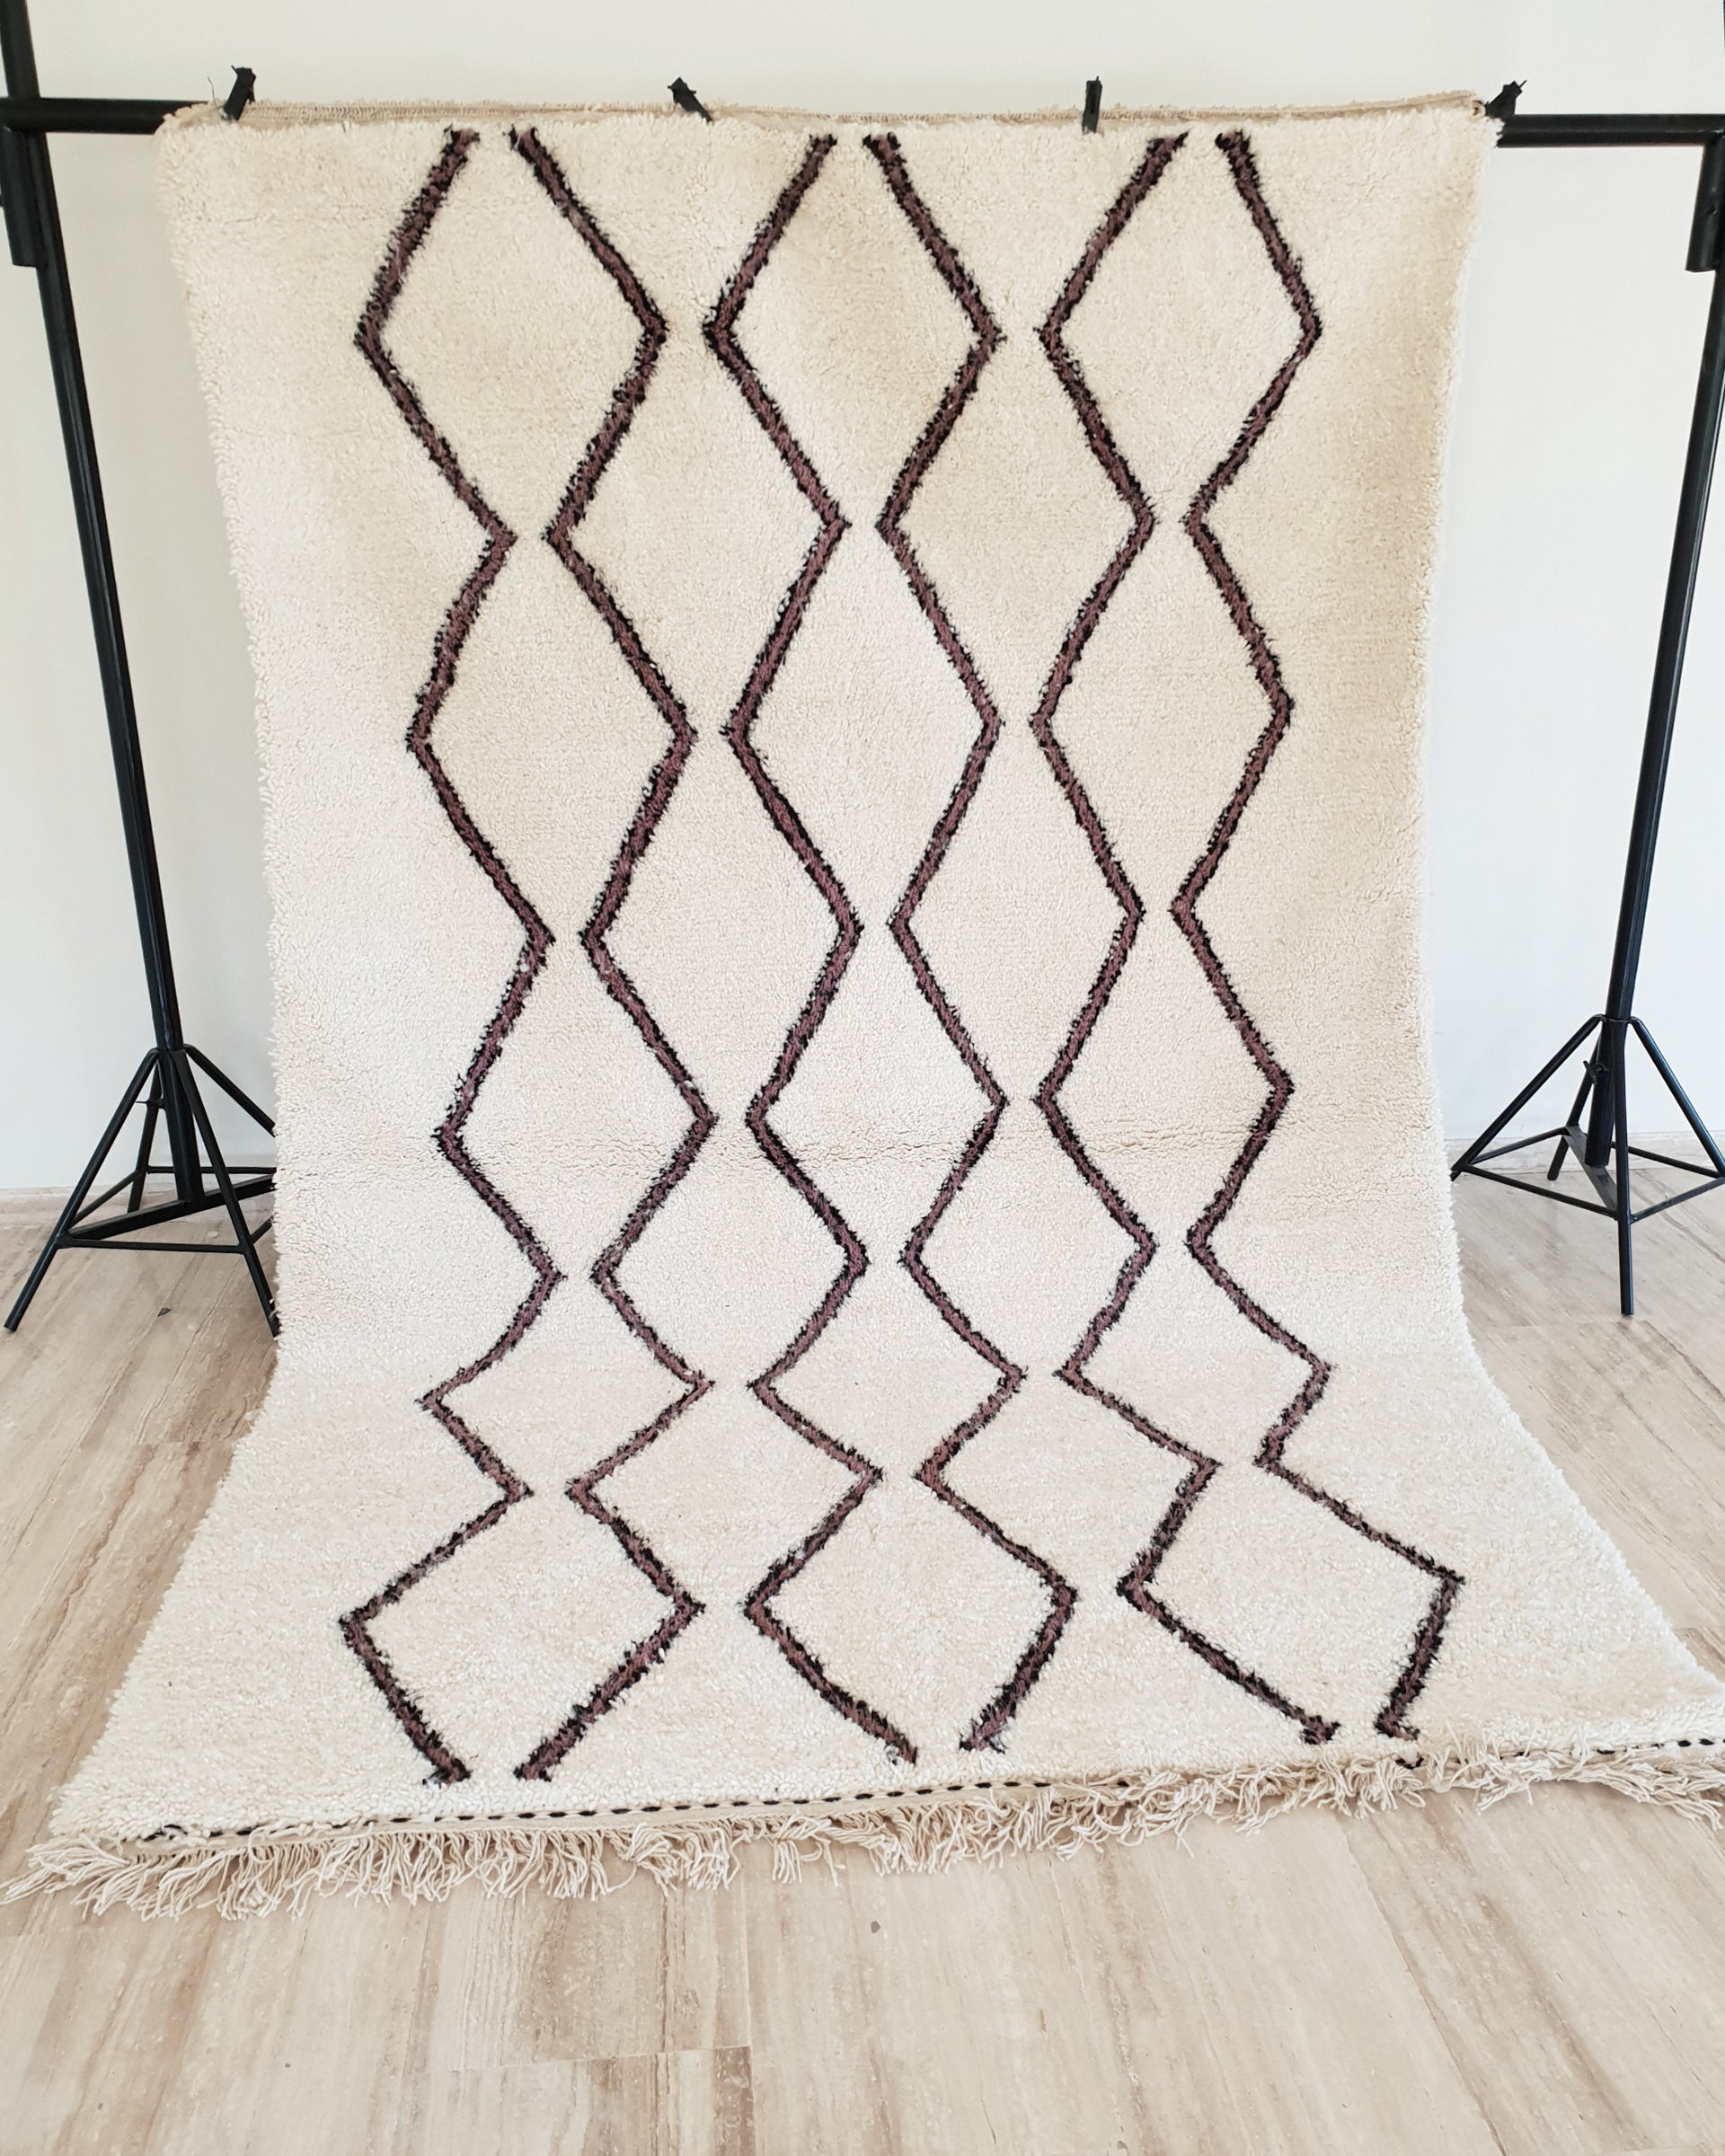 Hand knotted beni Ourain rug MANAR